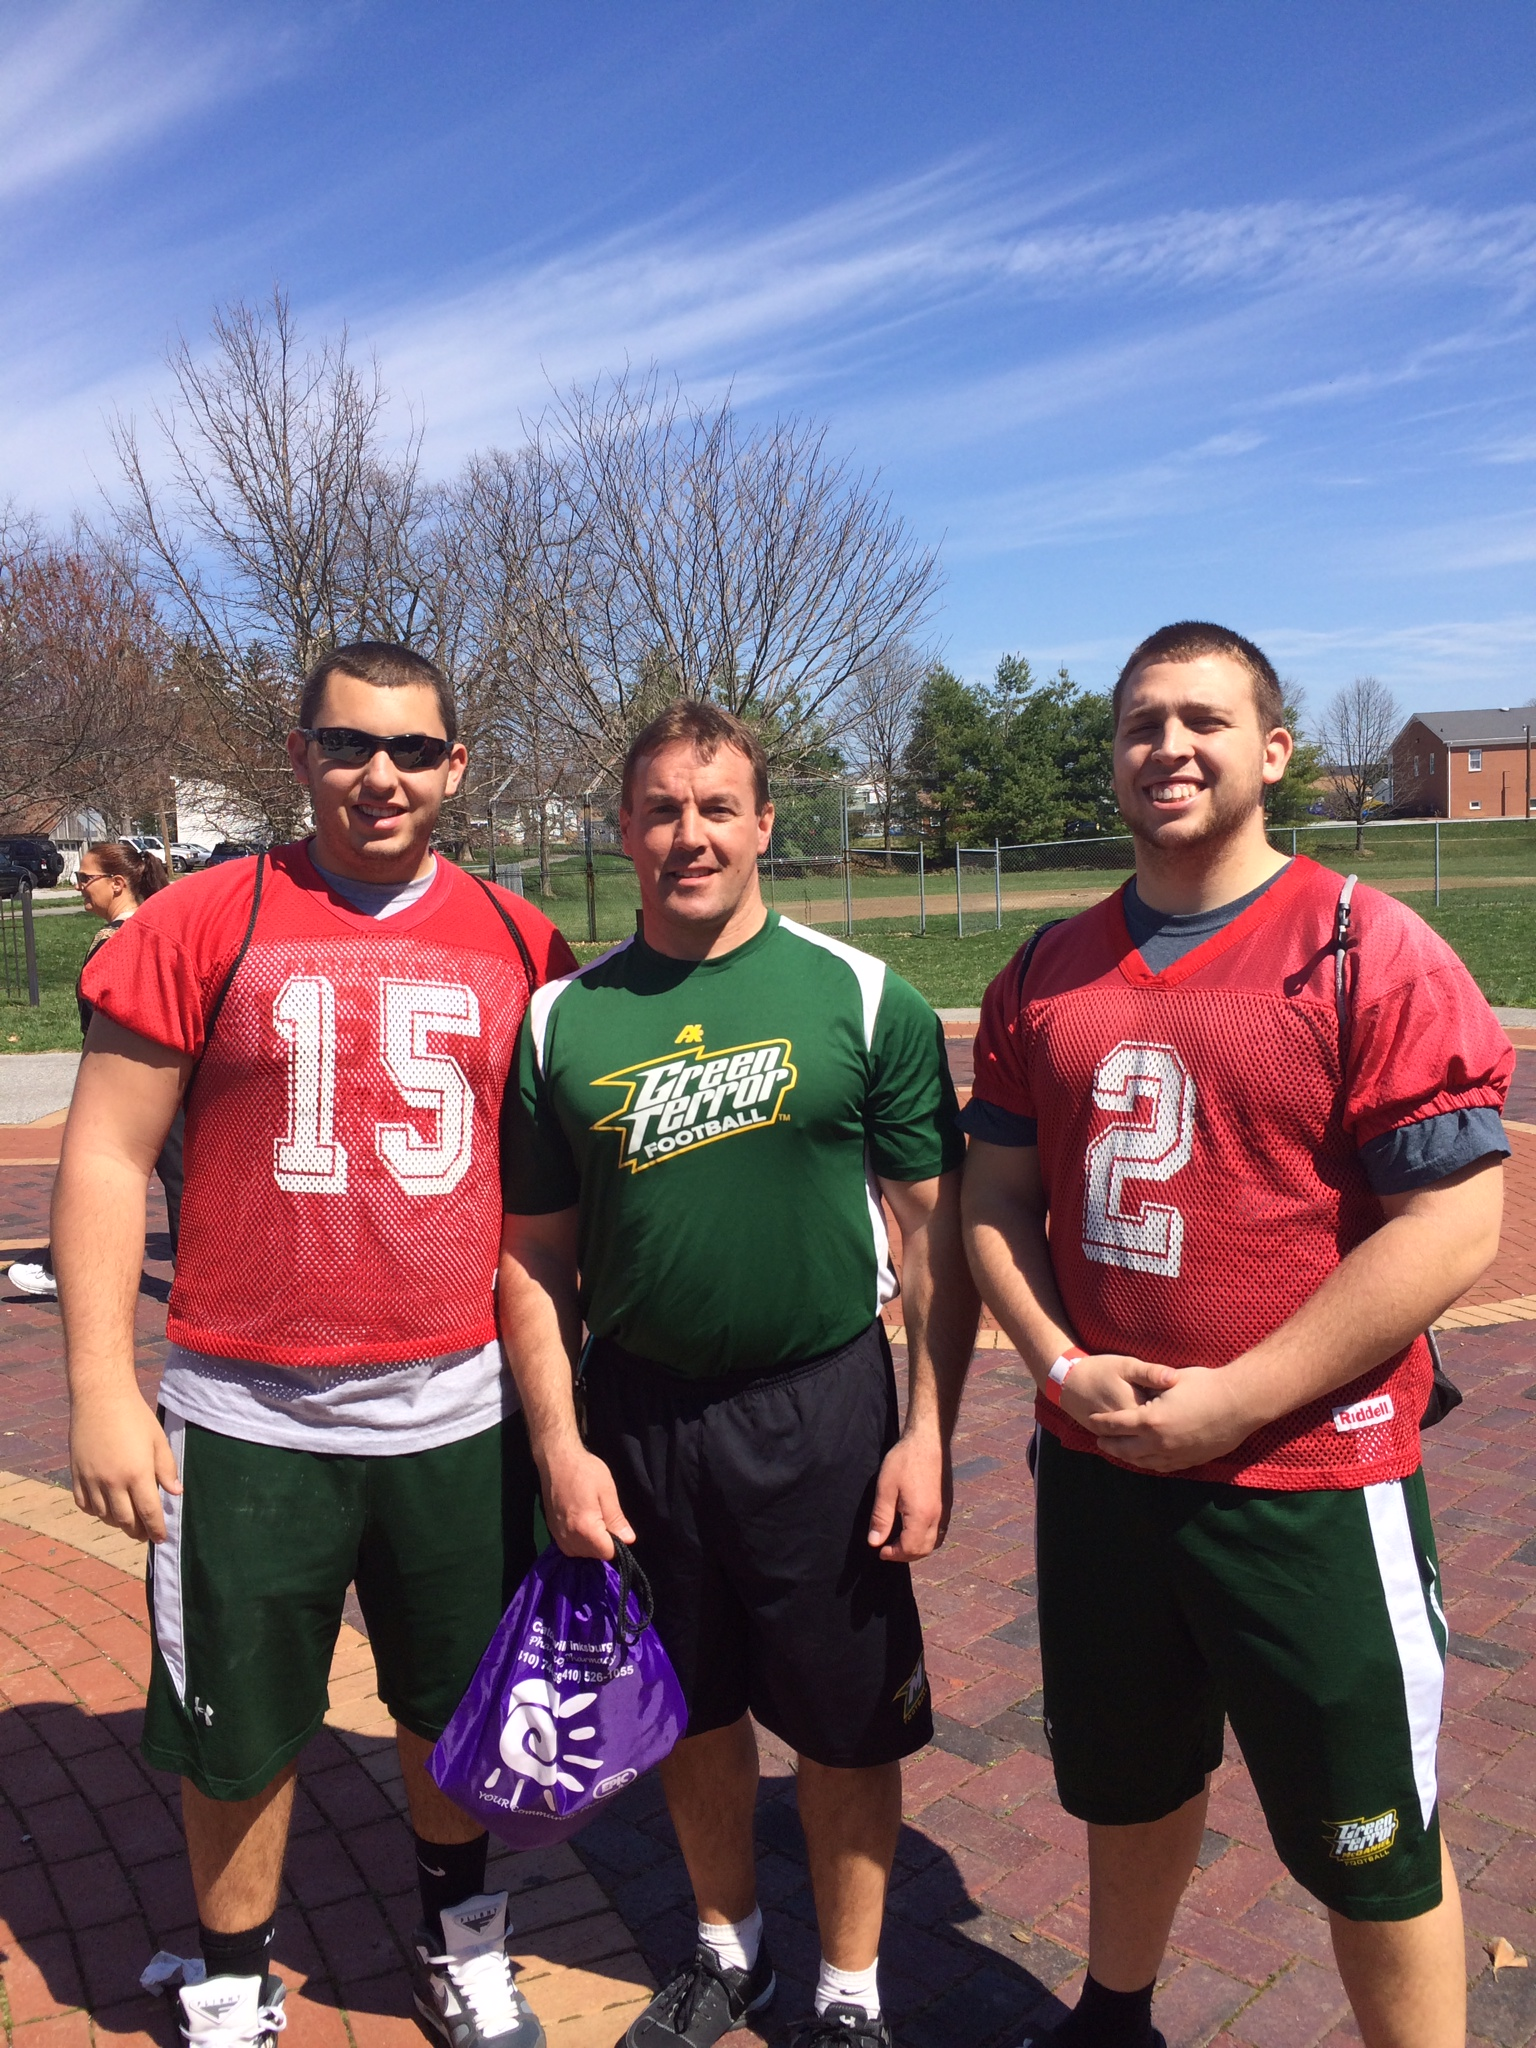 McDaniel Football kickers Ryan Lutes (left) and Douglass MacArthur (right) with Head Coach, Mike Hoyt (middle) at start of walk of Walk A Mile in Her Shoes at Dutterer Family Park in Westminster, MD